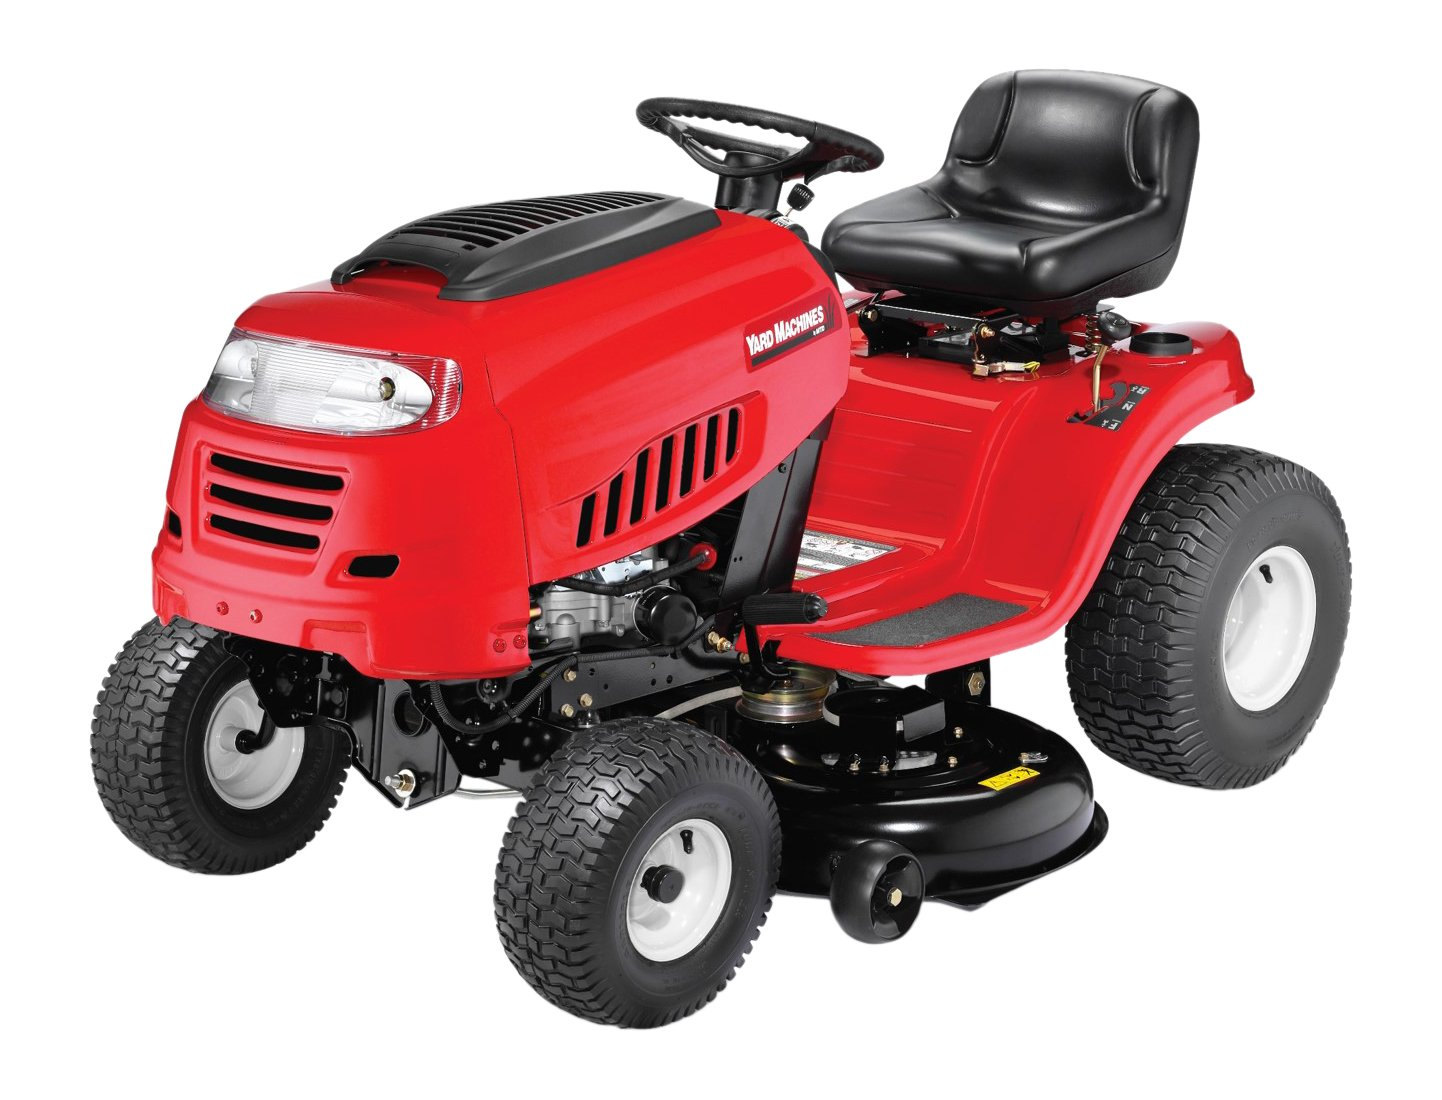 Amazon.com : Yard Machines 420cc 42-Inch Riding Lawn Tractor : Garden &  Outdoor